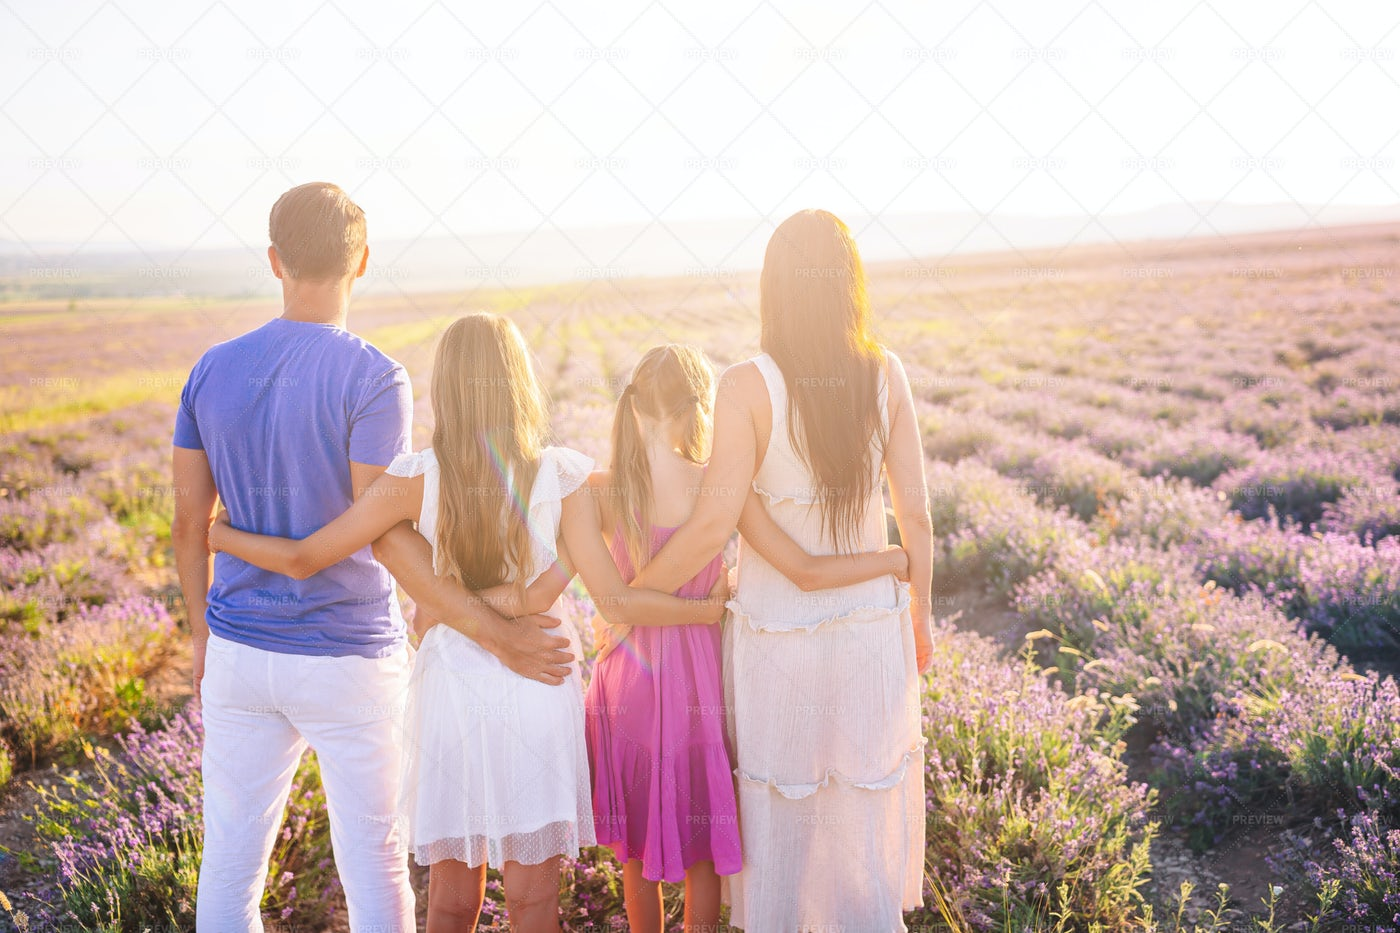 Family In Lavender Field: Stock Photos